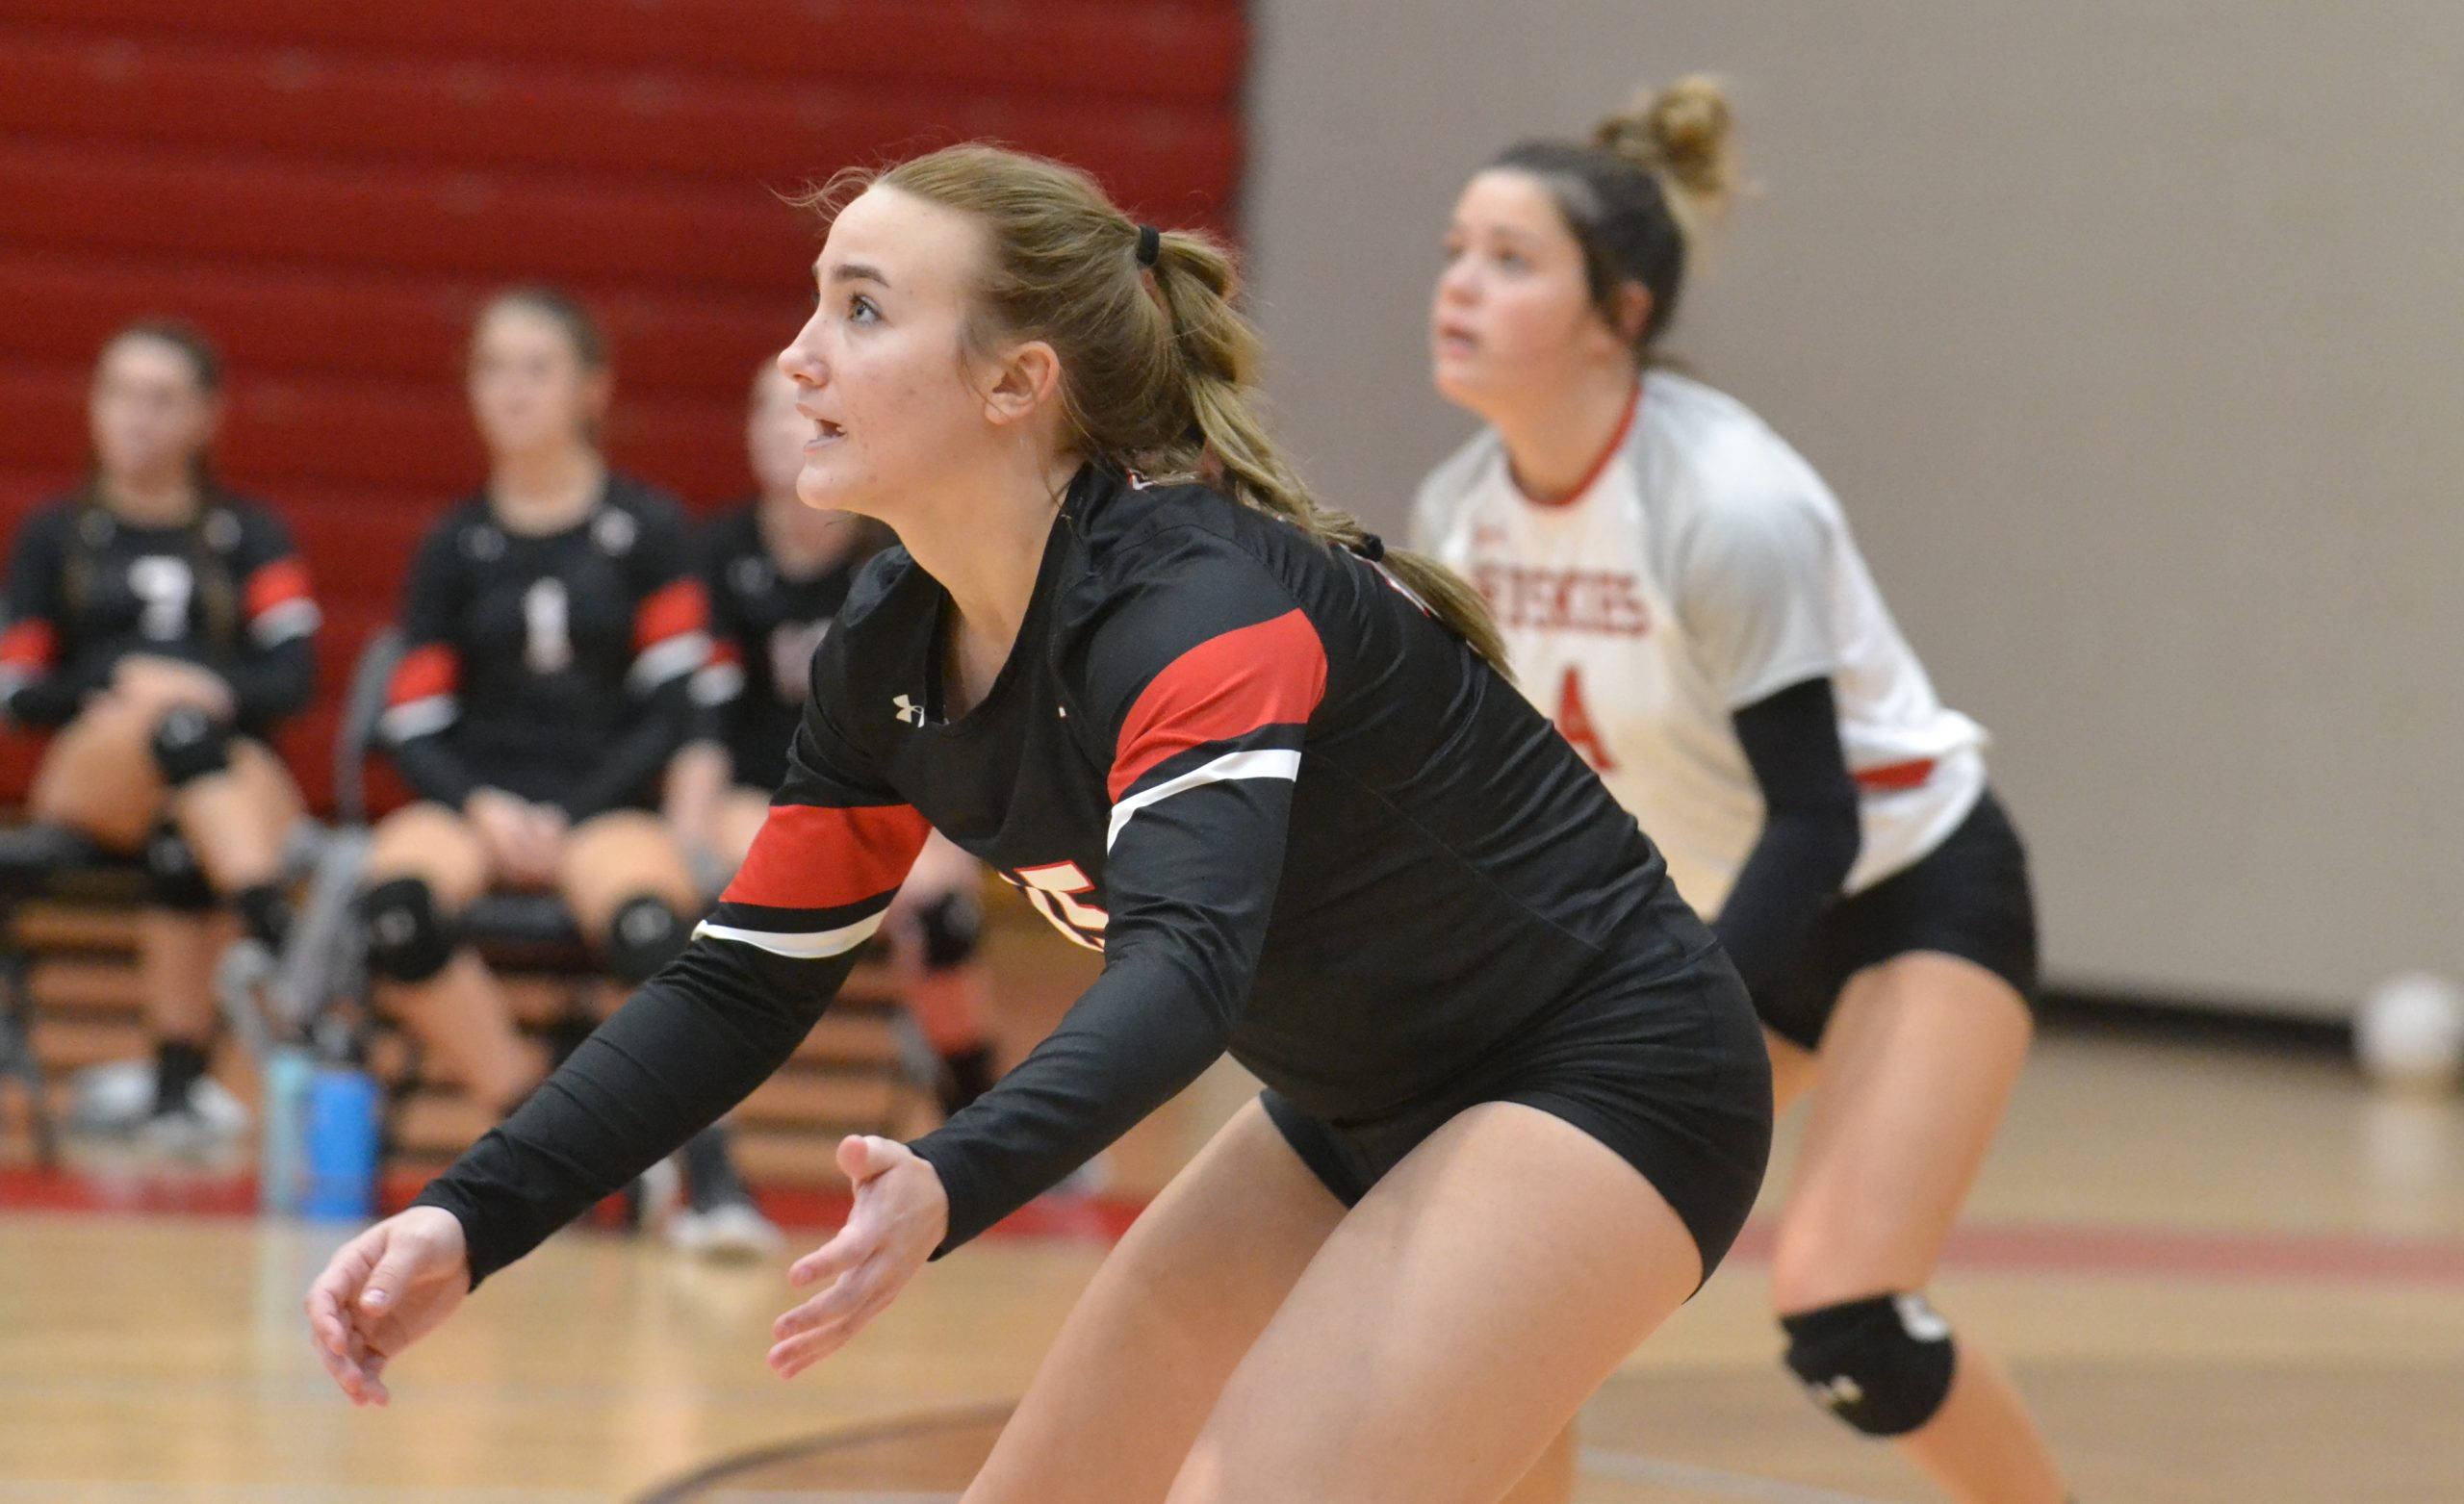 VOLLEYBALL: Hewitt takes Pinson in straight sets